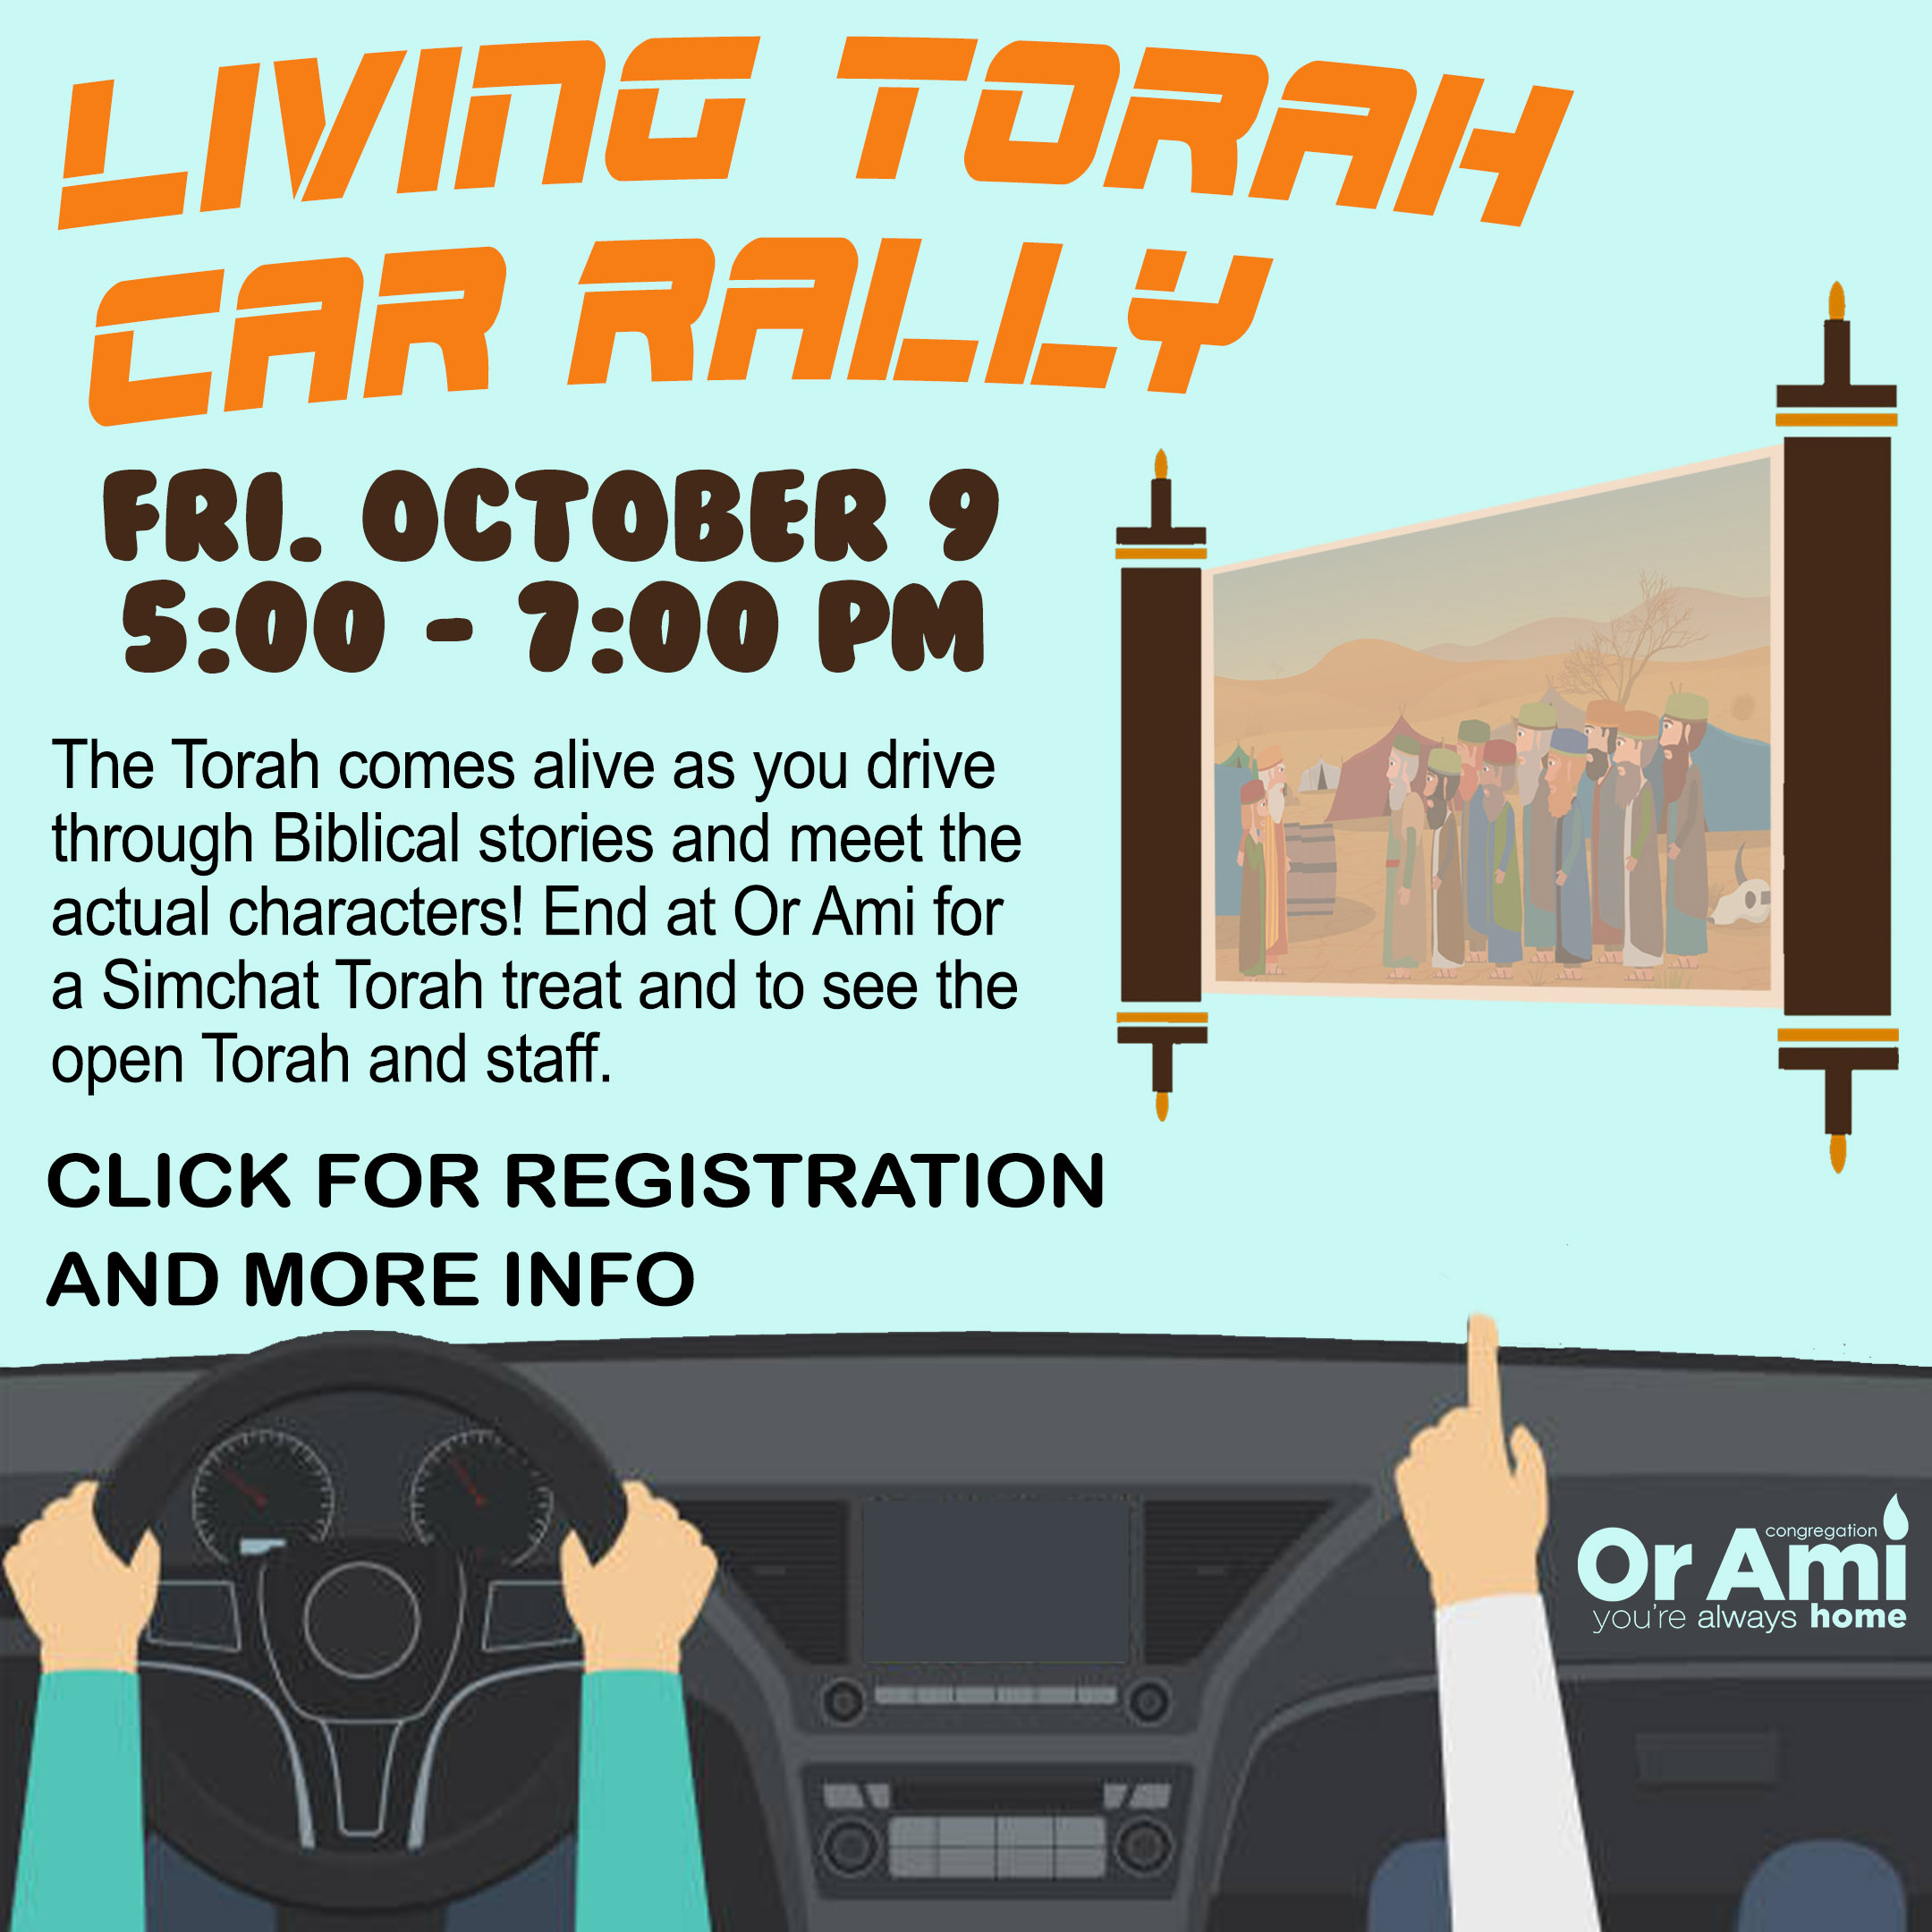 living torah car rally with CLICK v2